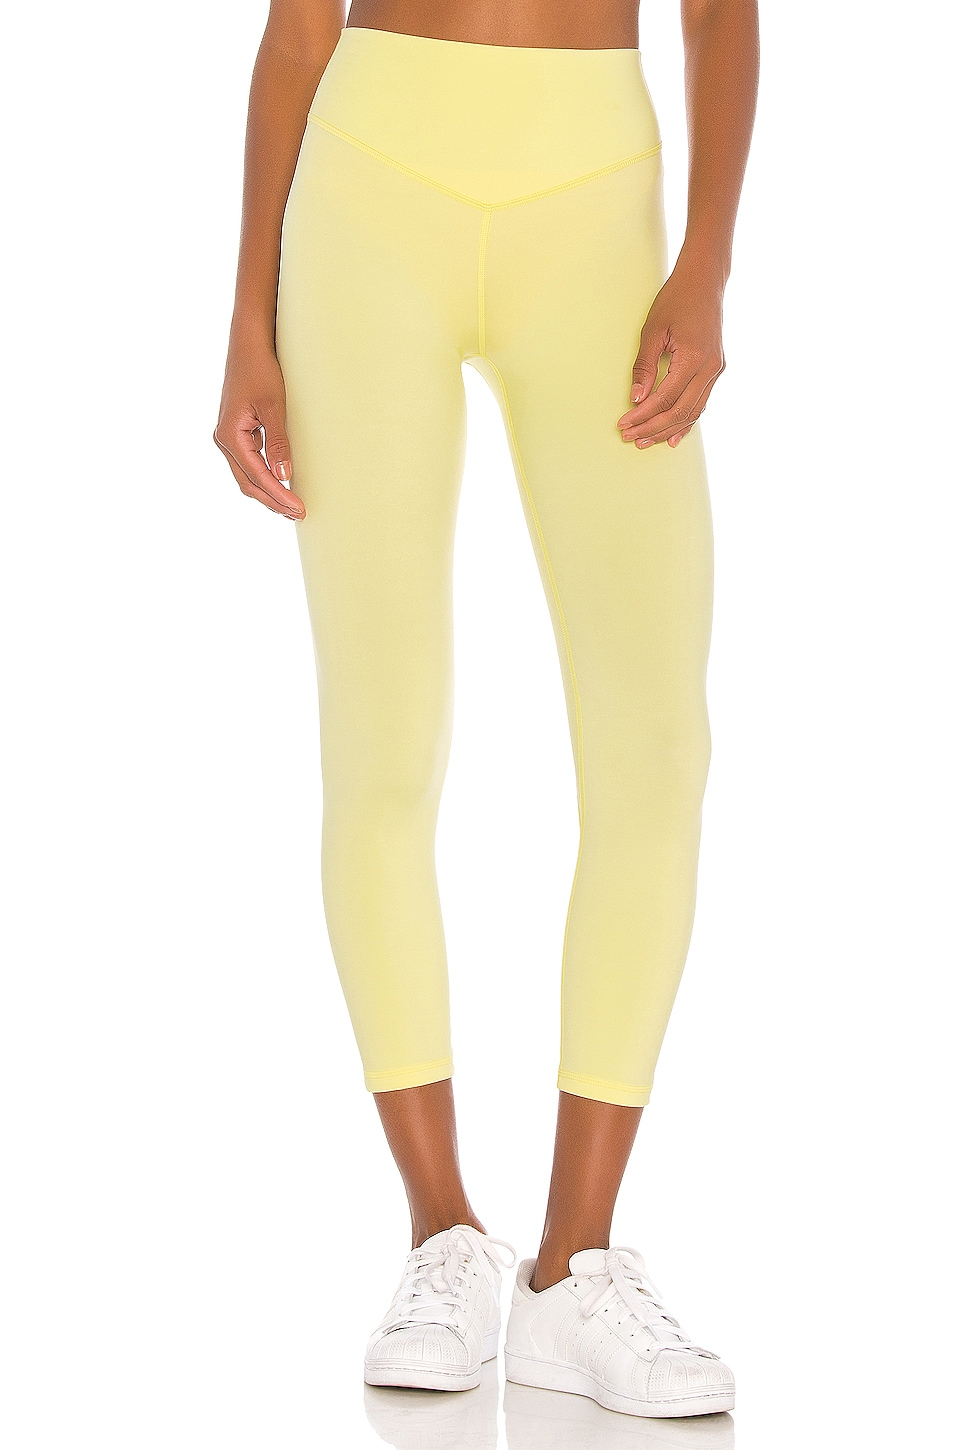 lovewave The Rowan Pant in Lemon Drop